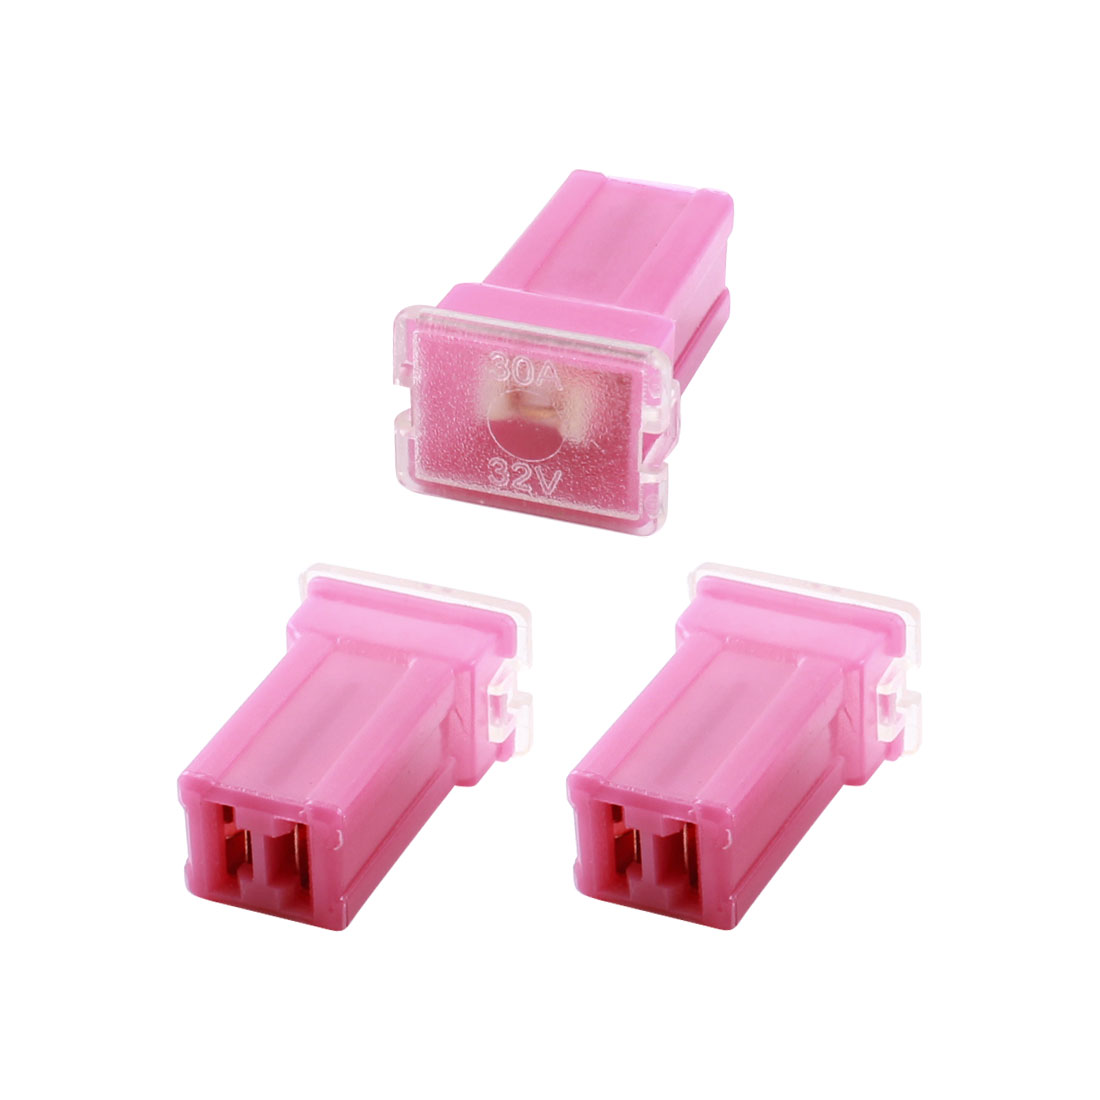 2 Pcs 32V 30A Female Plug Slow Blow Red Plastic Cartridge Car PAL Fuse